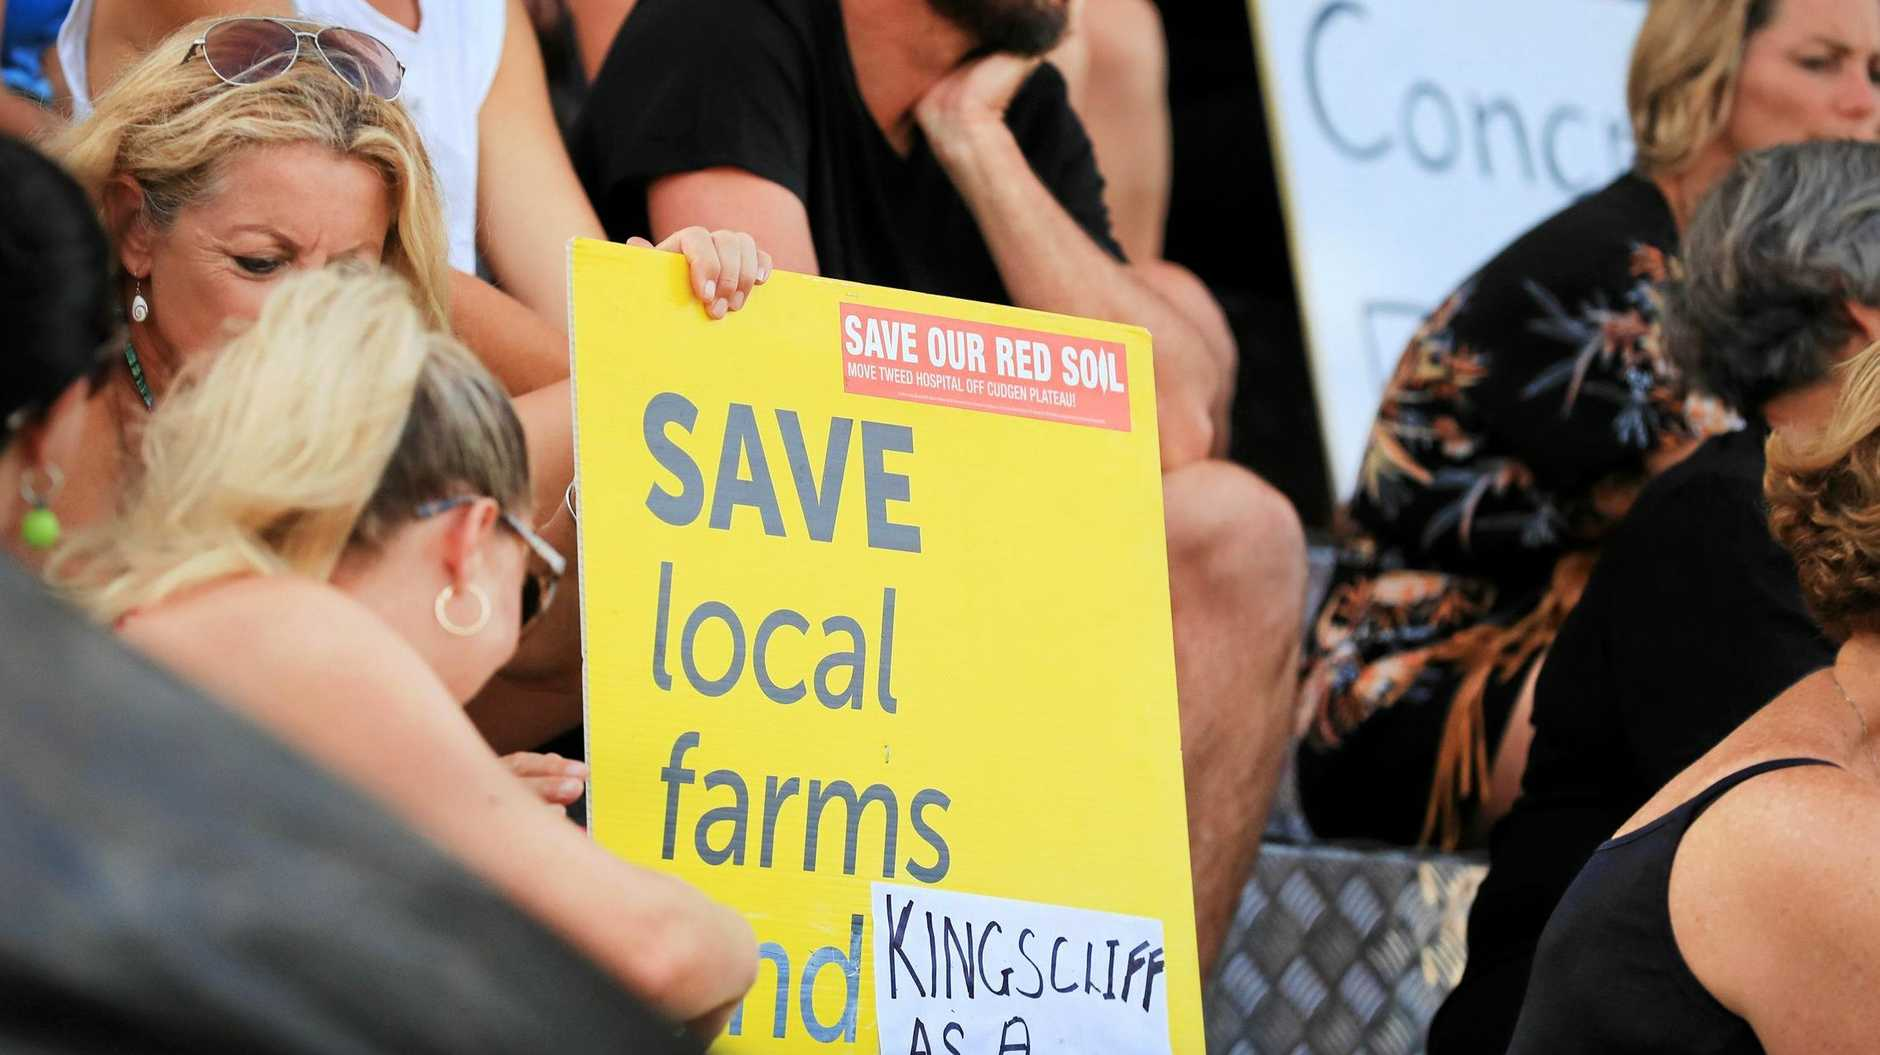 HOSPITAL KERFUFFLE: There was a strong opposition to the new Tweed Valley Hospital being built on agricultural land.